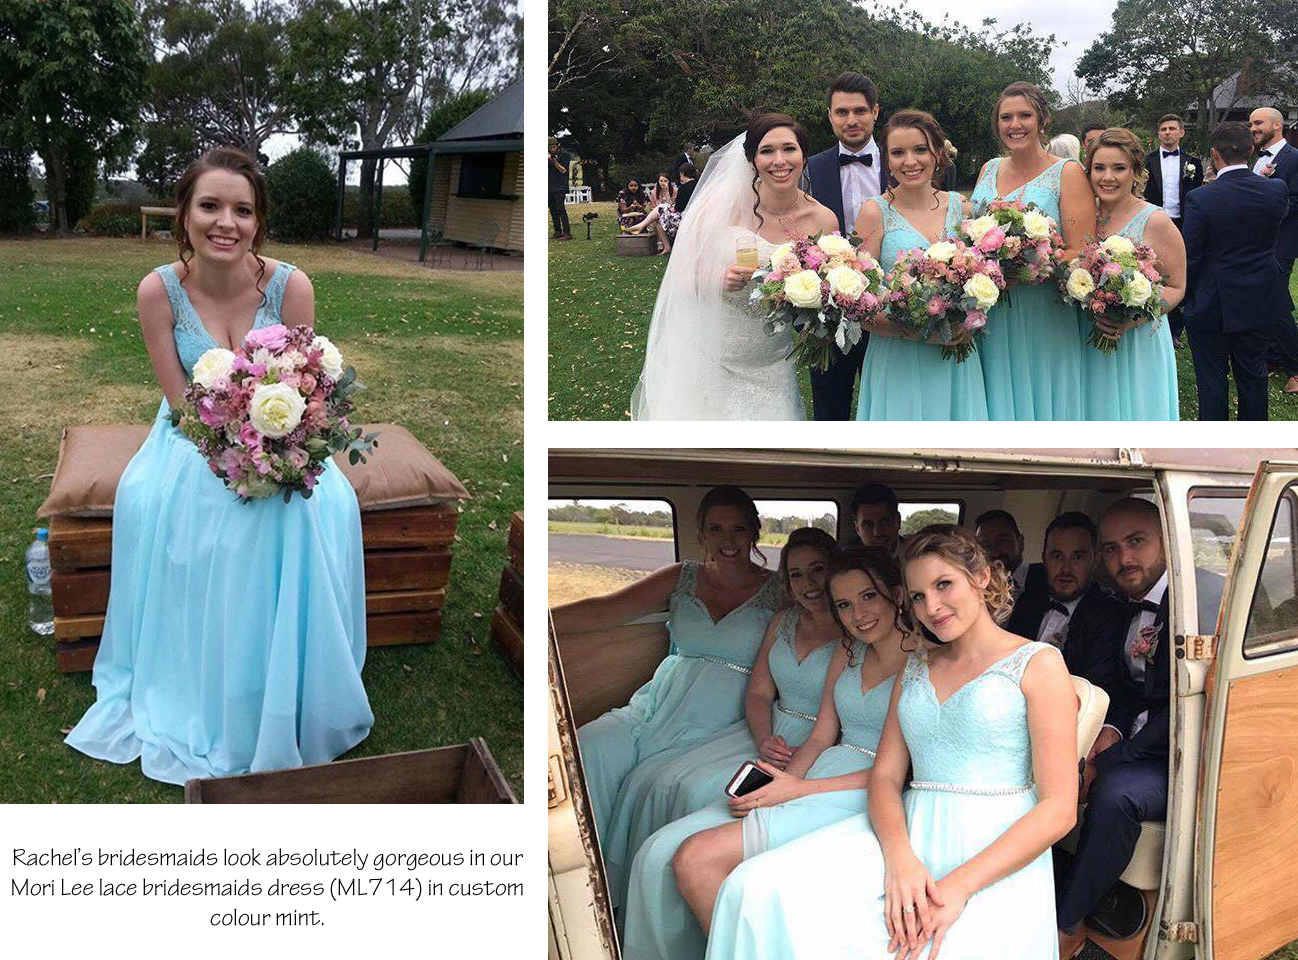 blue-bridesmaid-dresses-mori-lee-bridesmaids-dresses-online-sydney-melbourne-brisbane-adelaide-perth-jadore-dessy.jpg